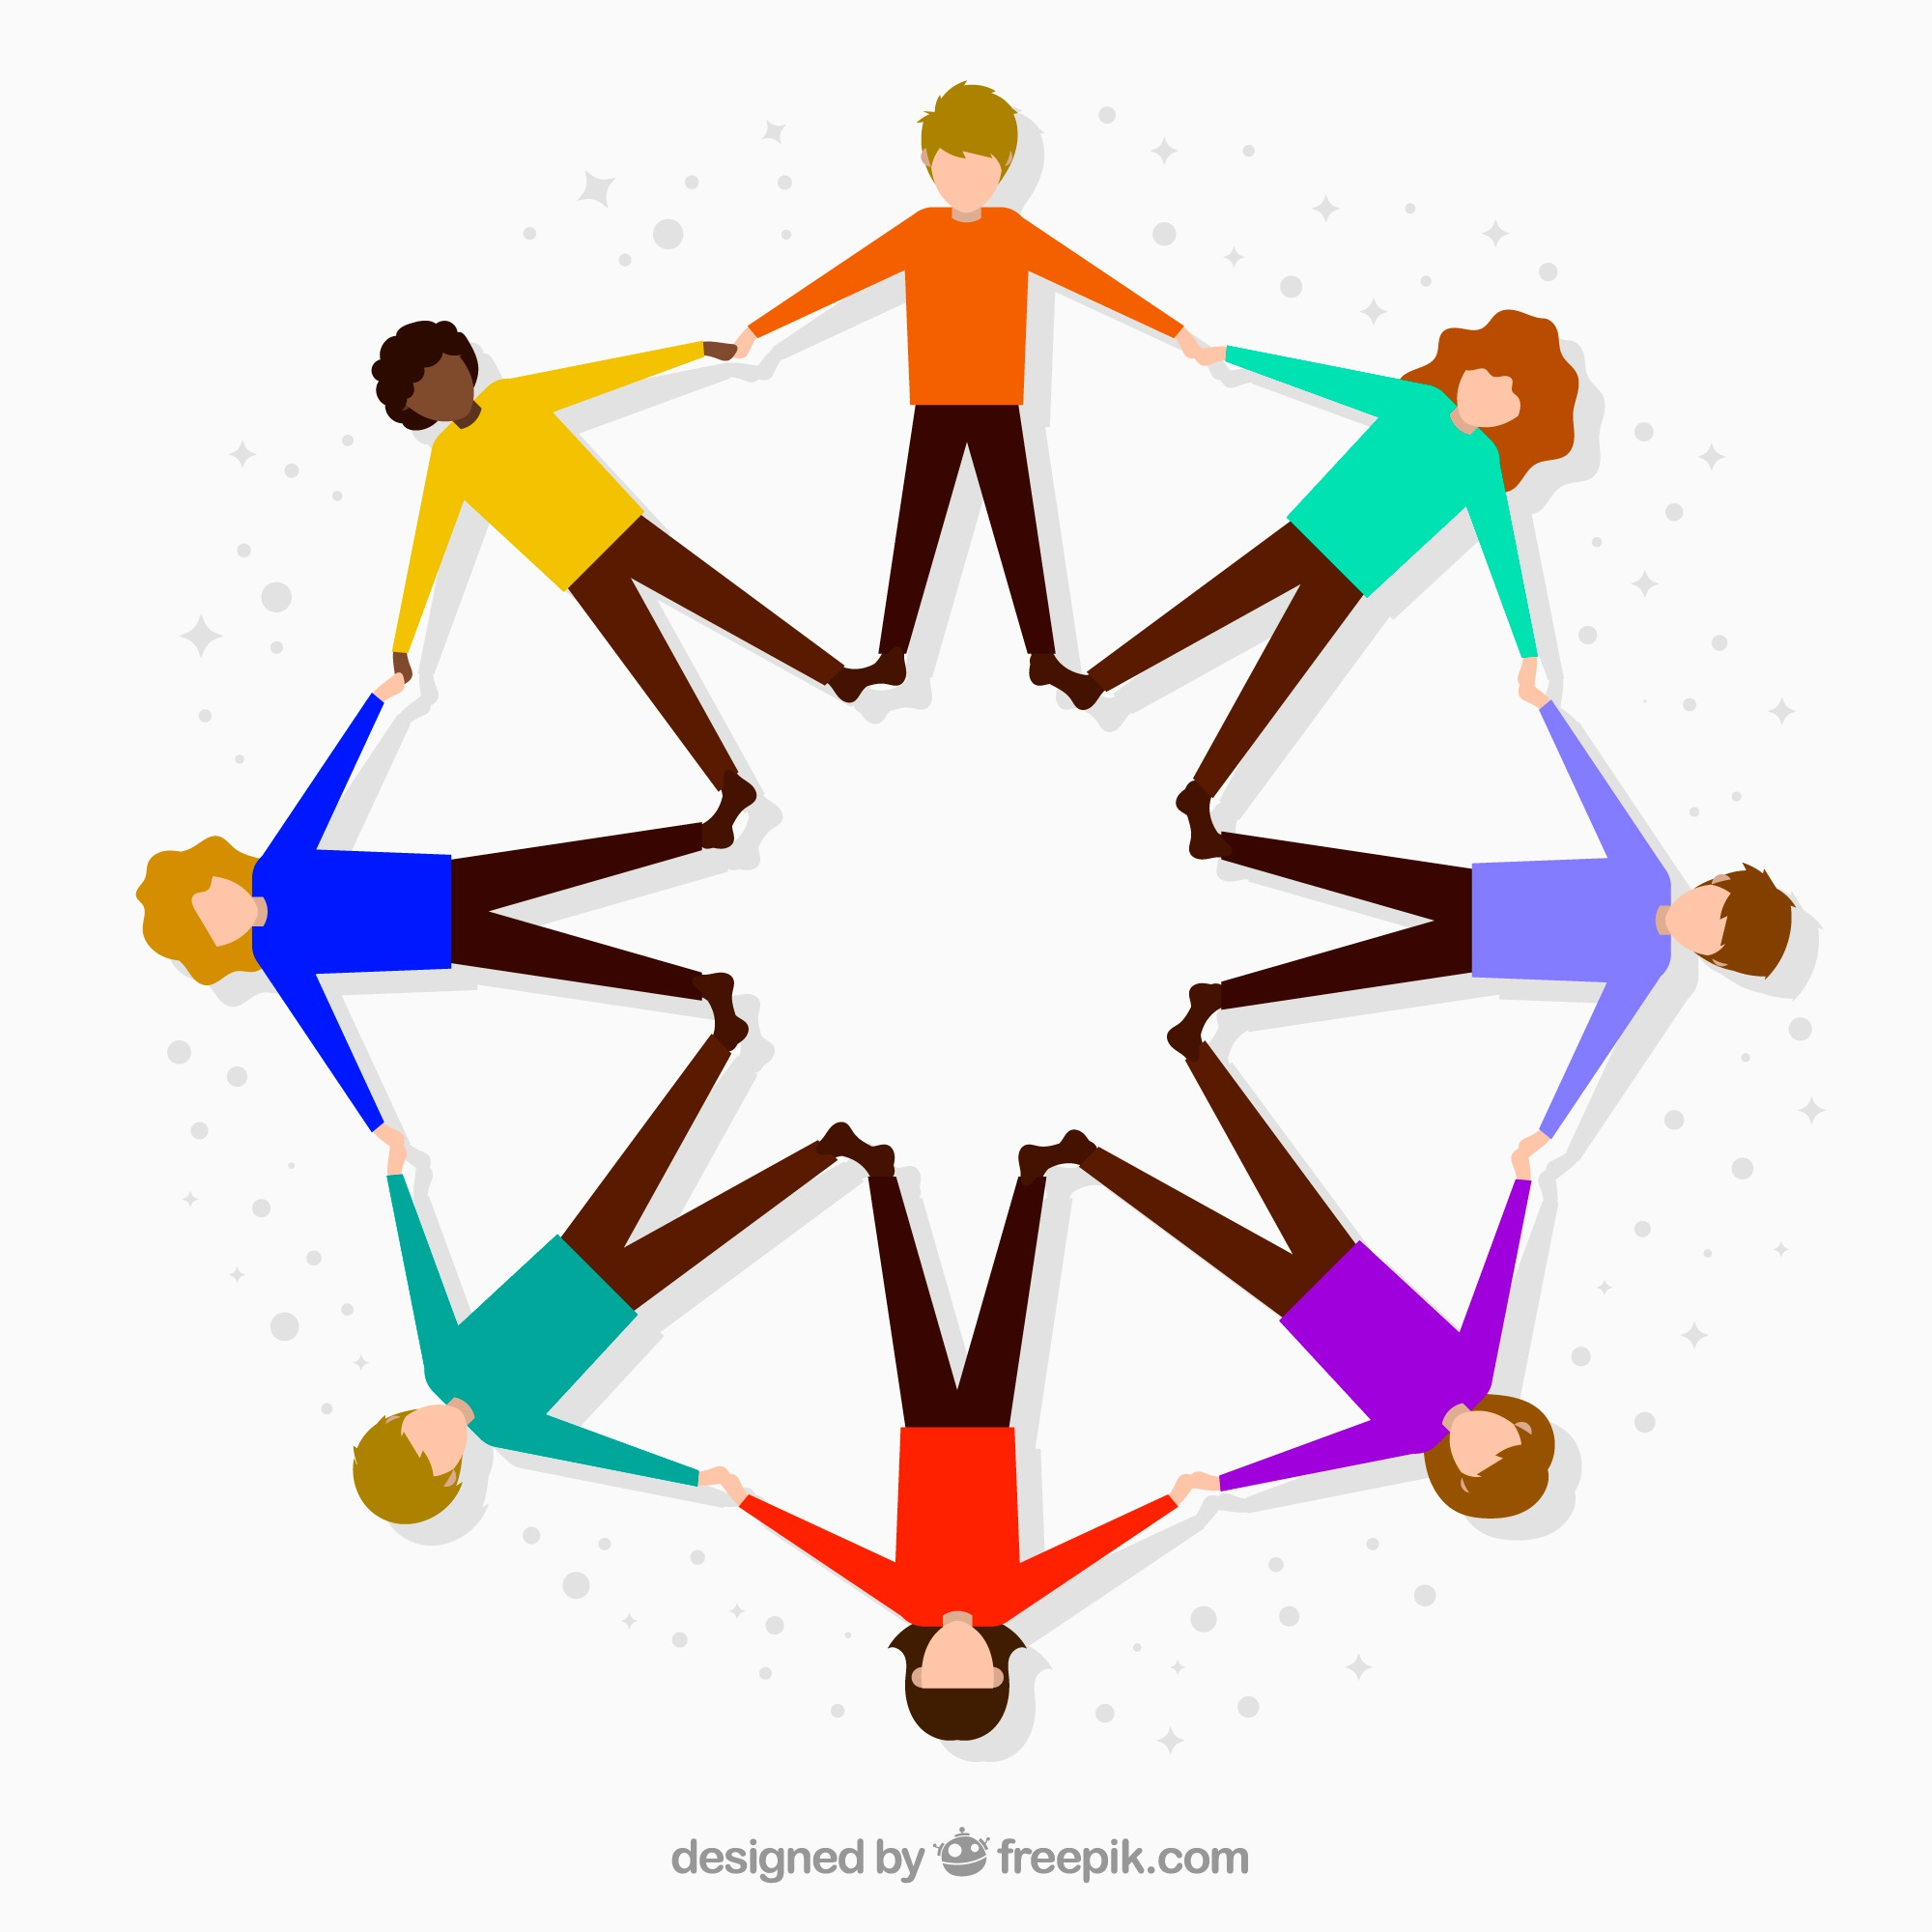 Flat people forming a circle with colorful style